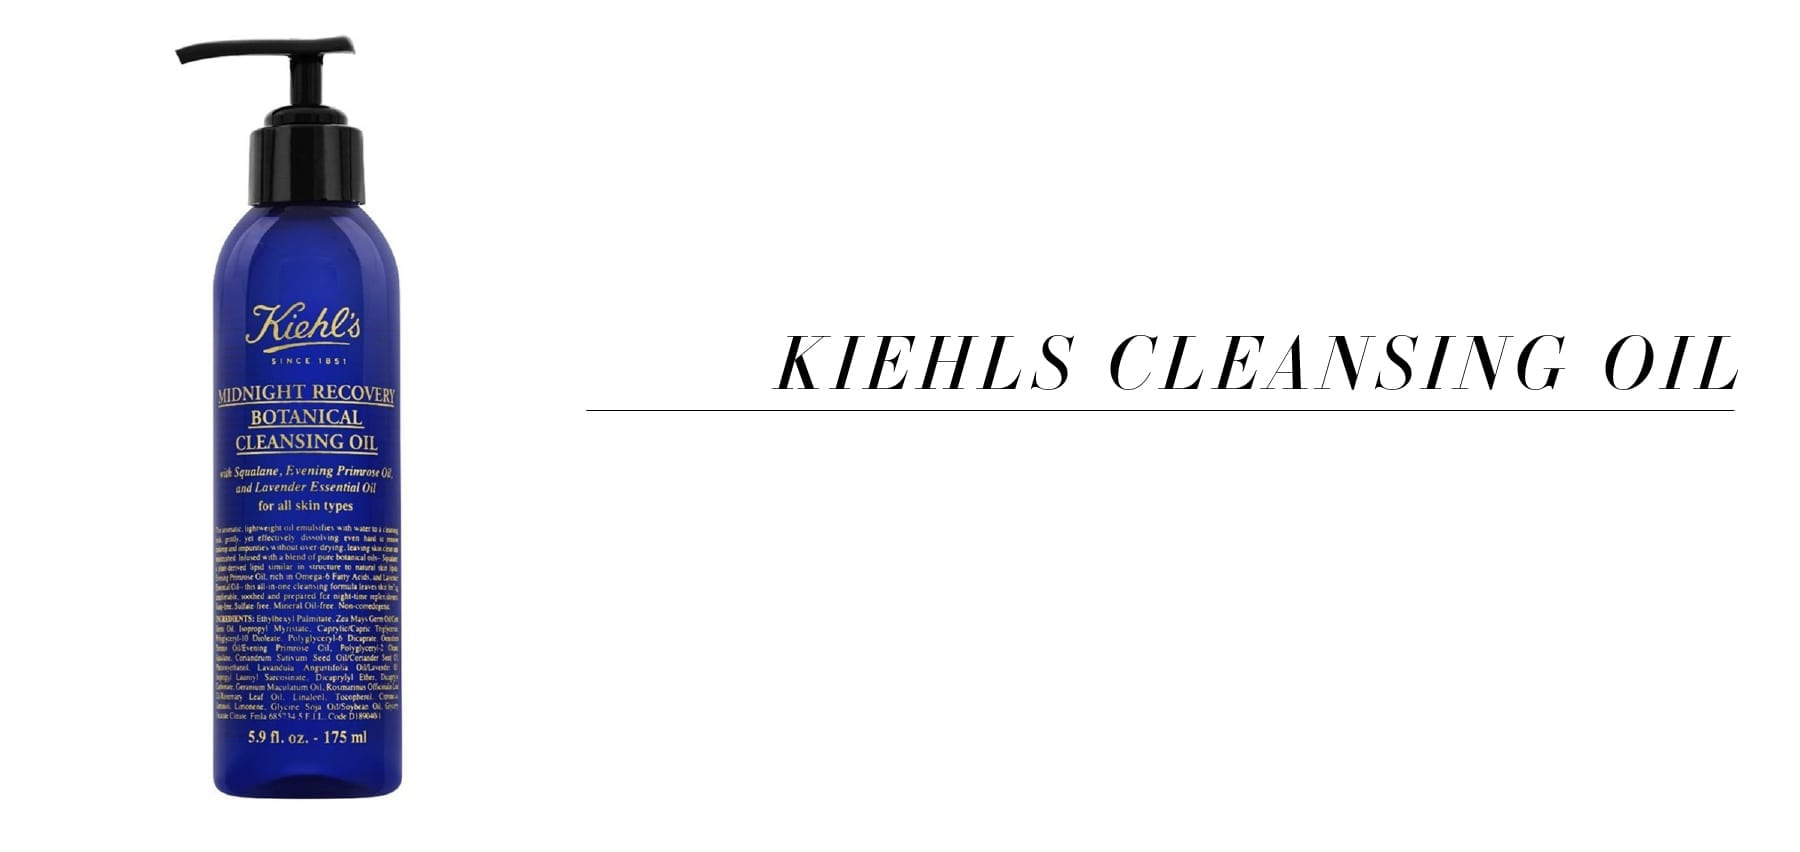 Kiehls Beauty